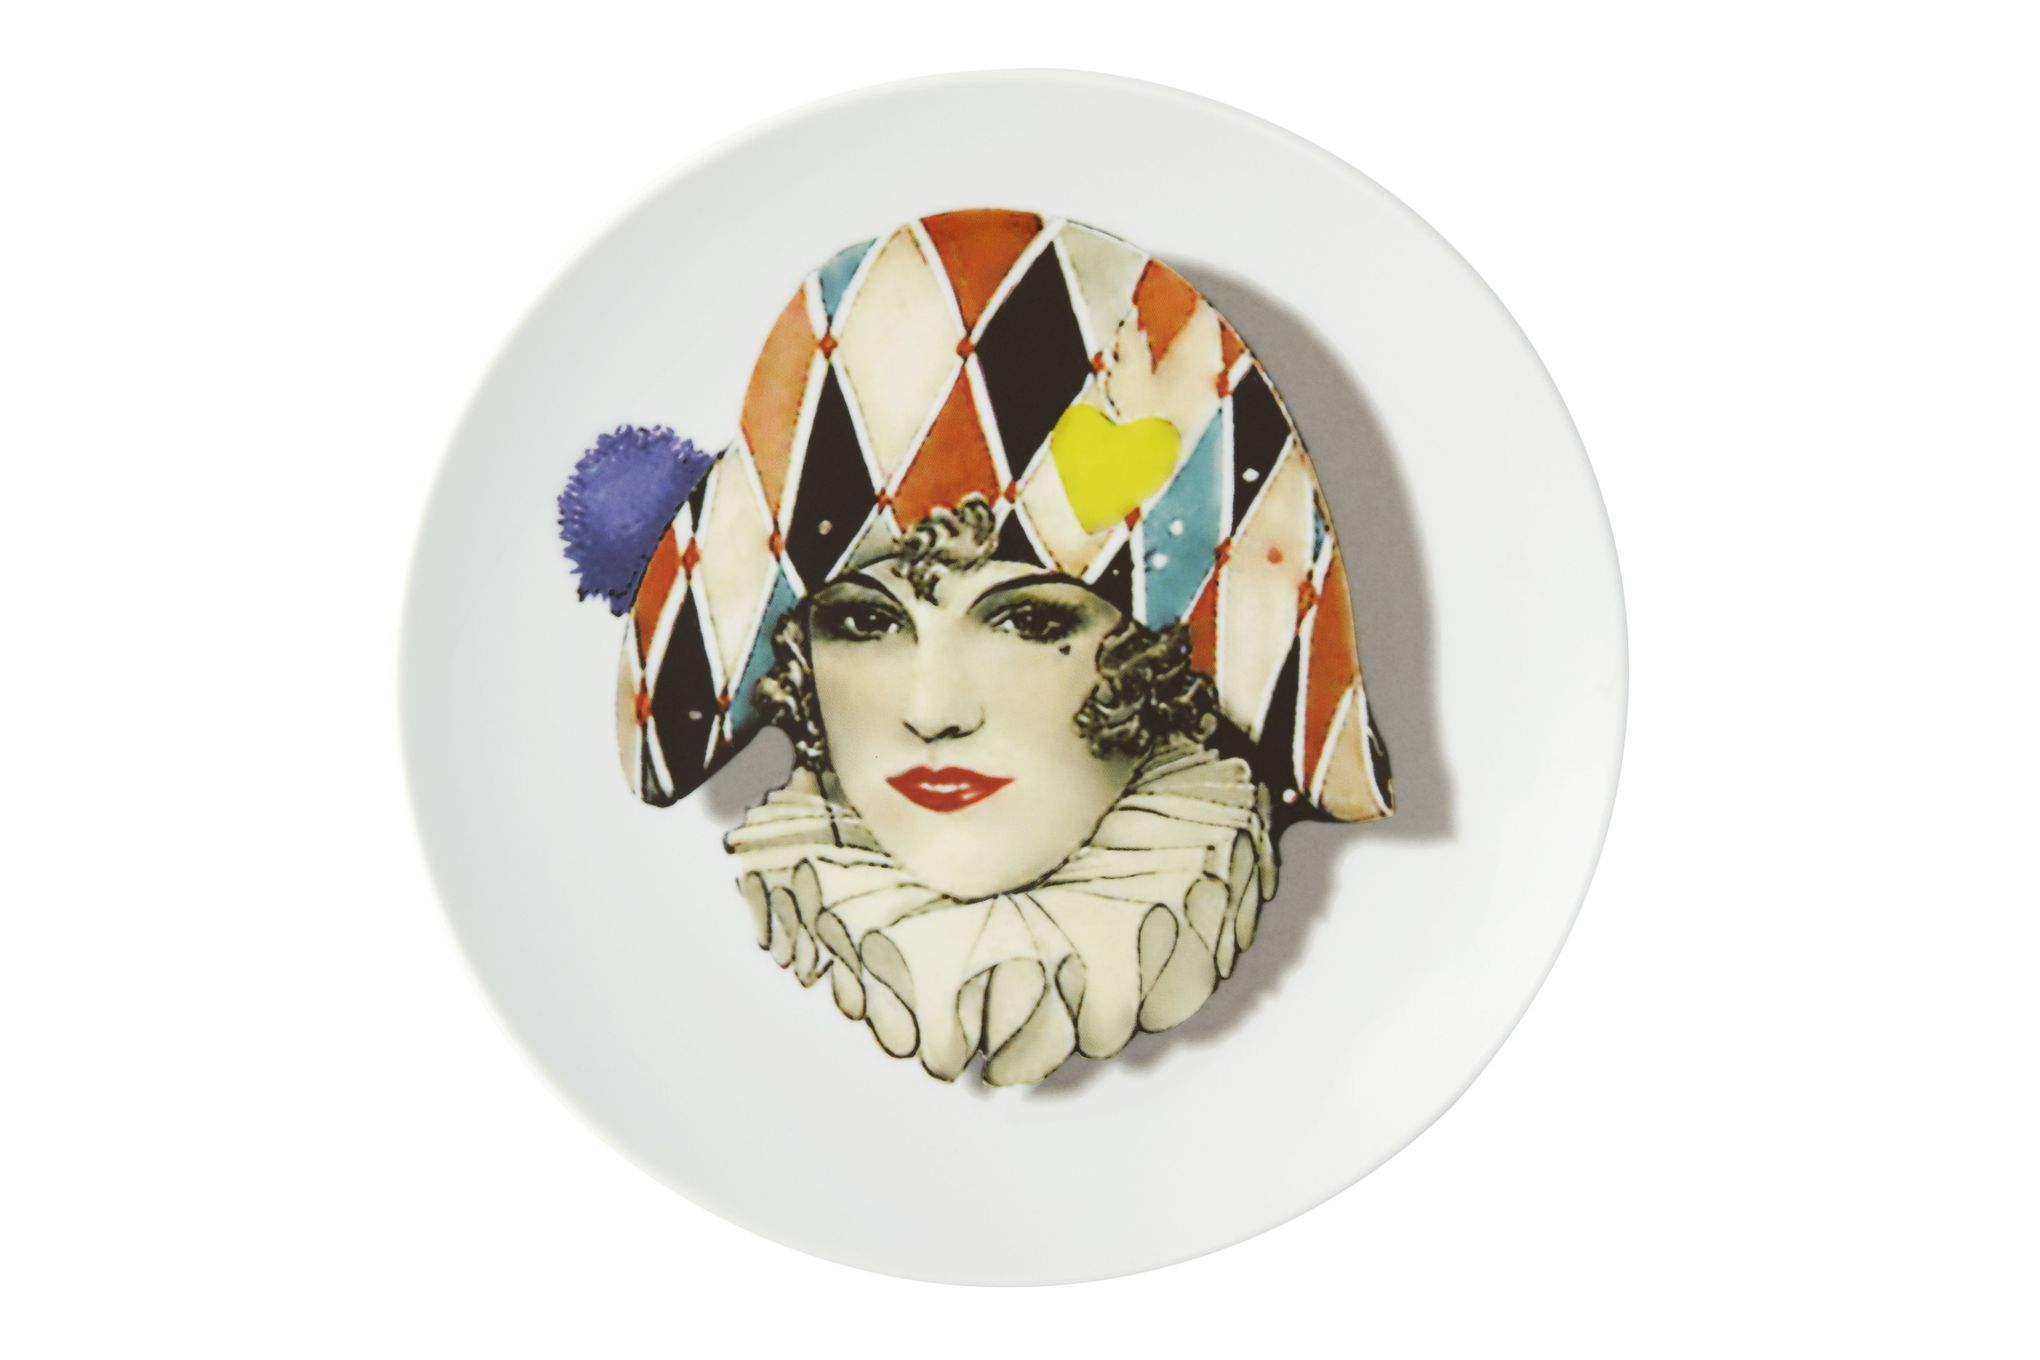 Christian Lacroix Love Who You Want Plate - Giftware Miss Harlequin - Gift Boxed 23cm thumb 1